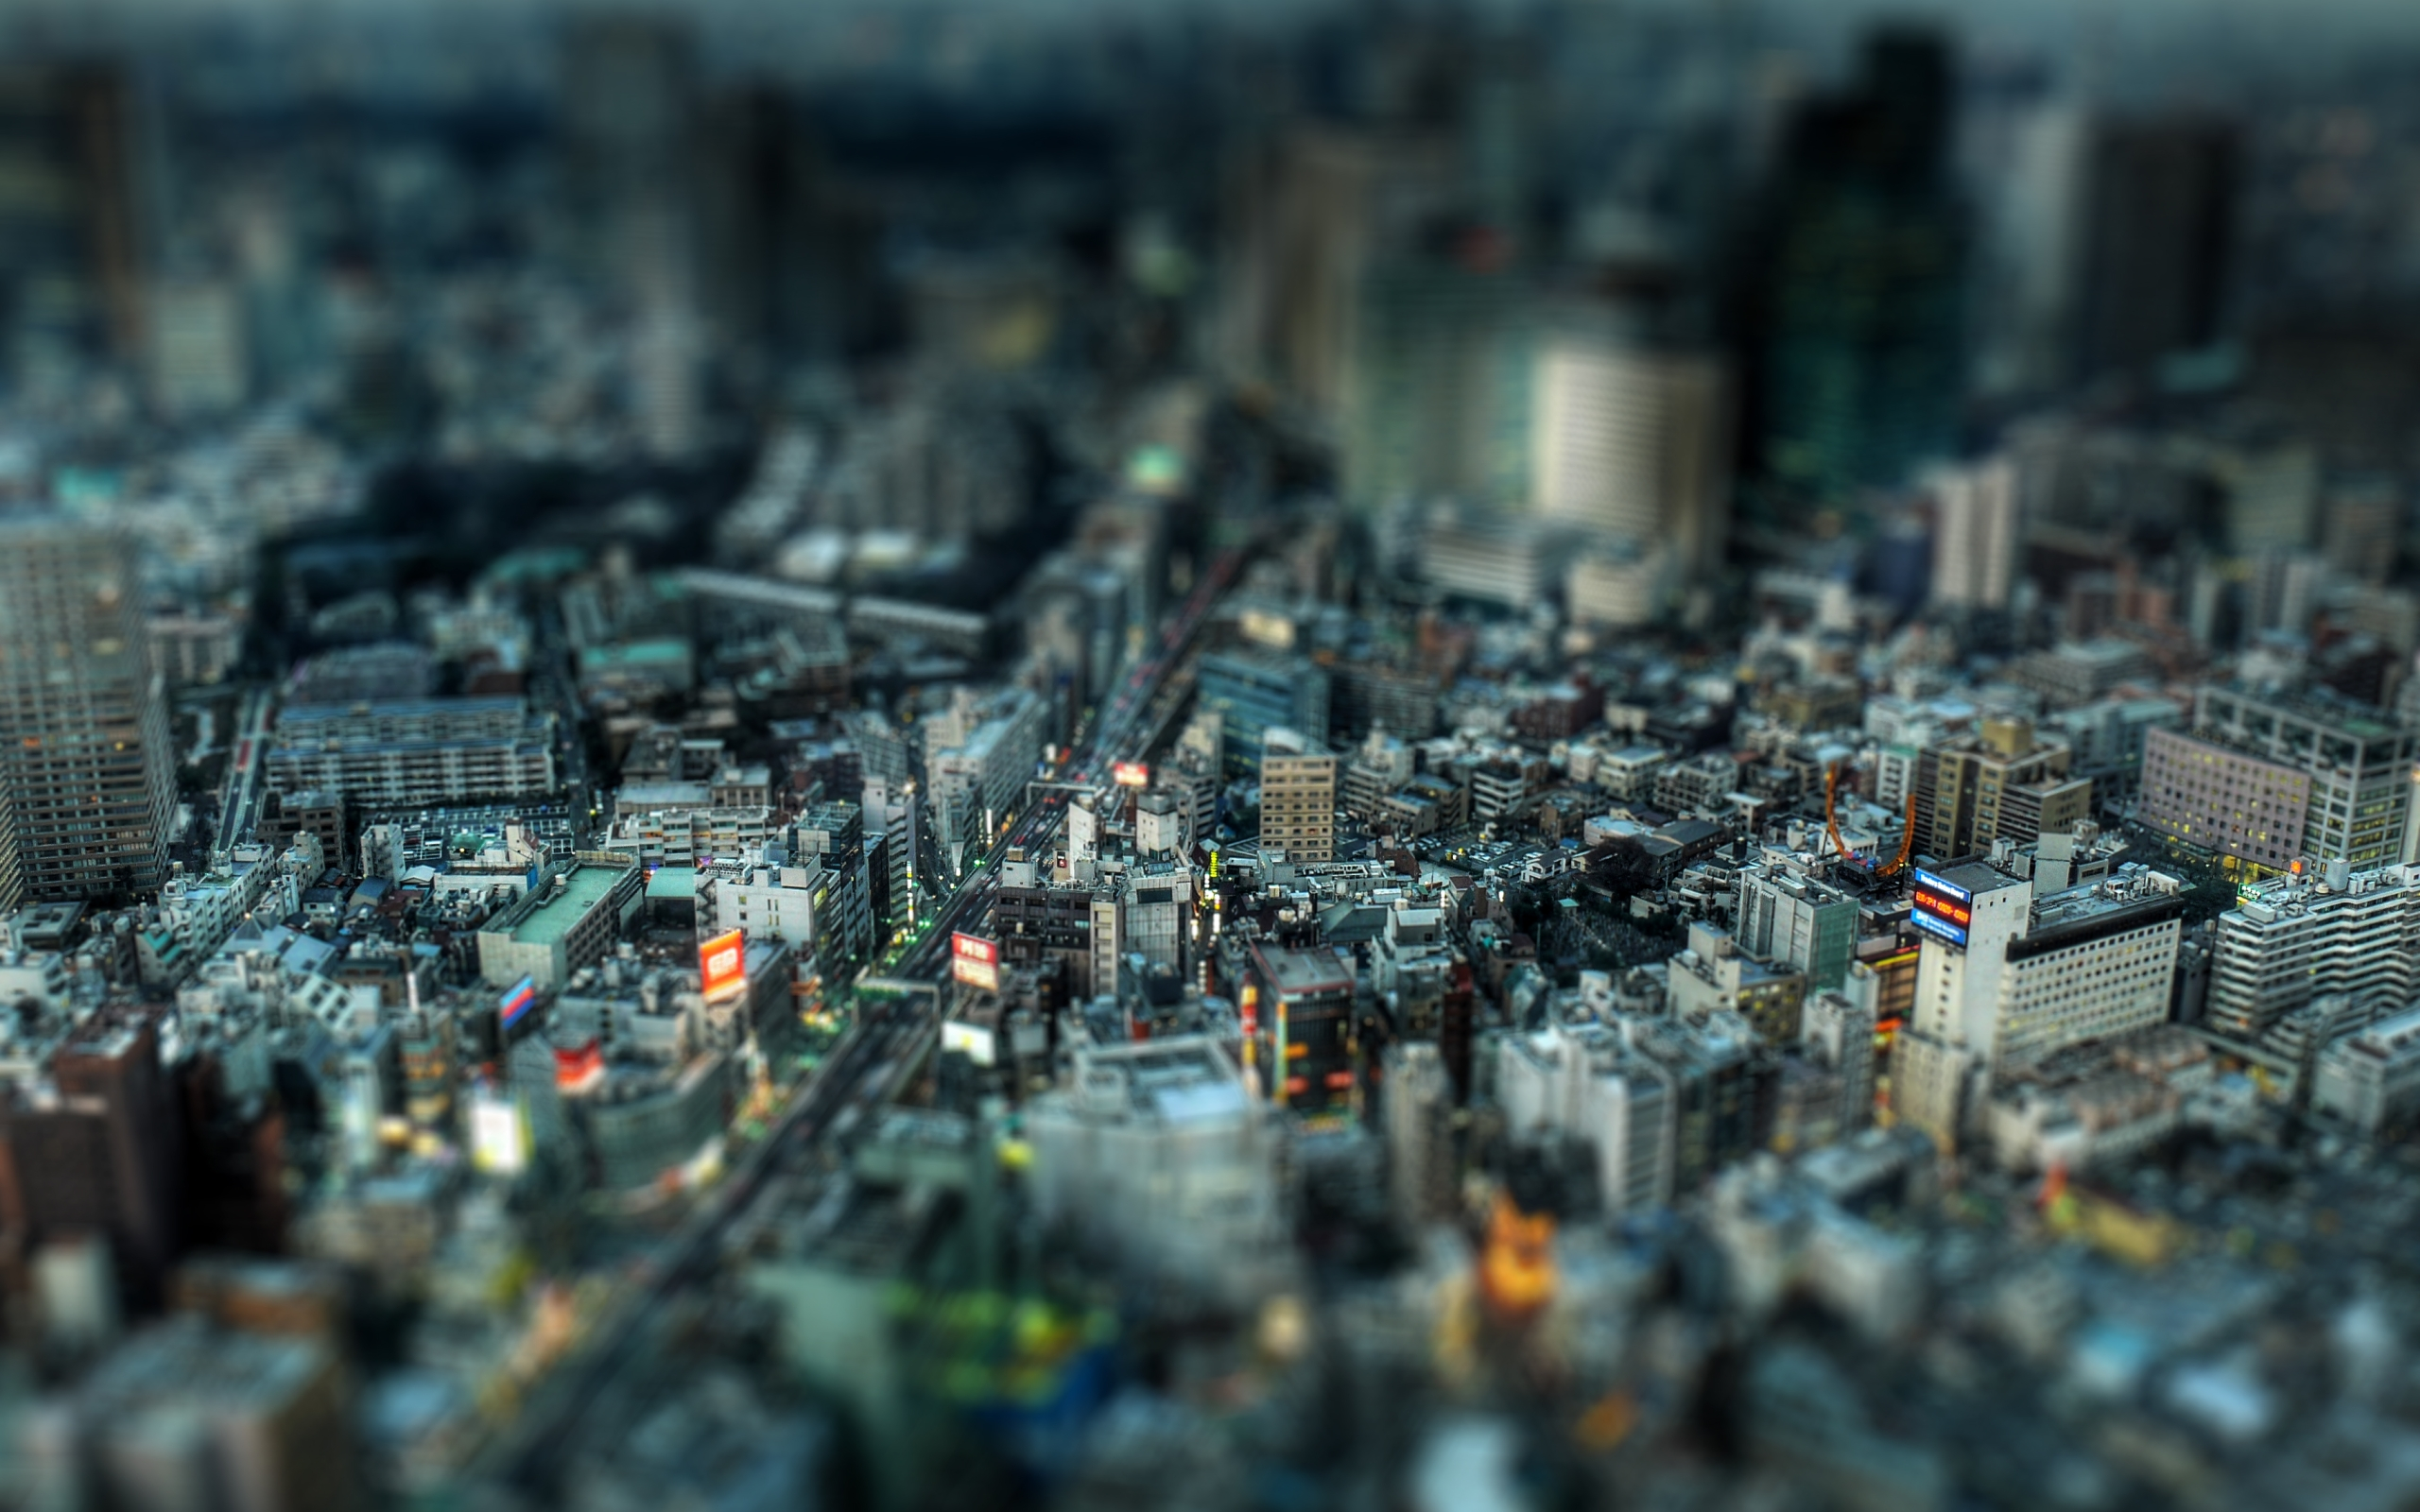 City tilt shift